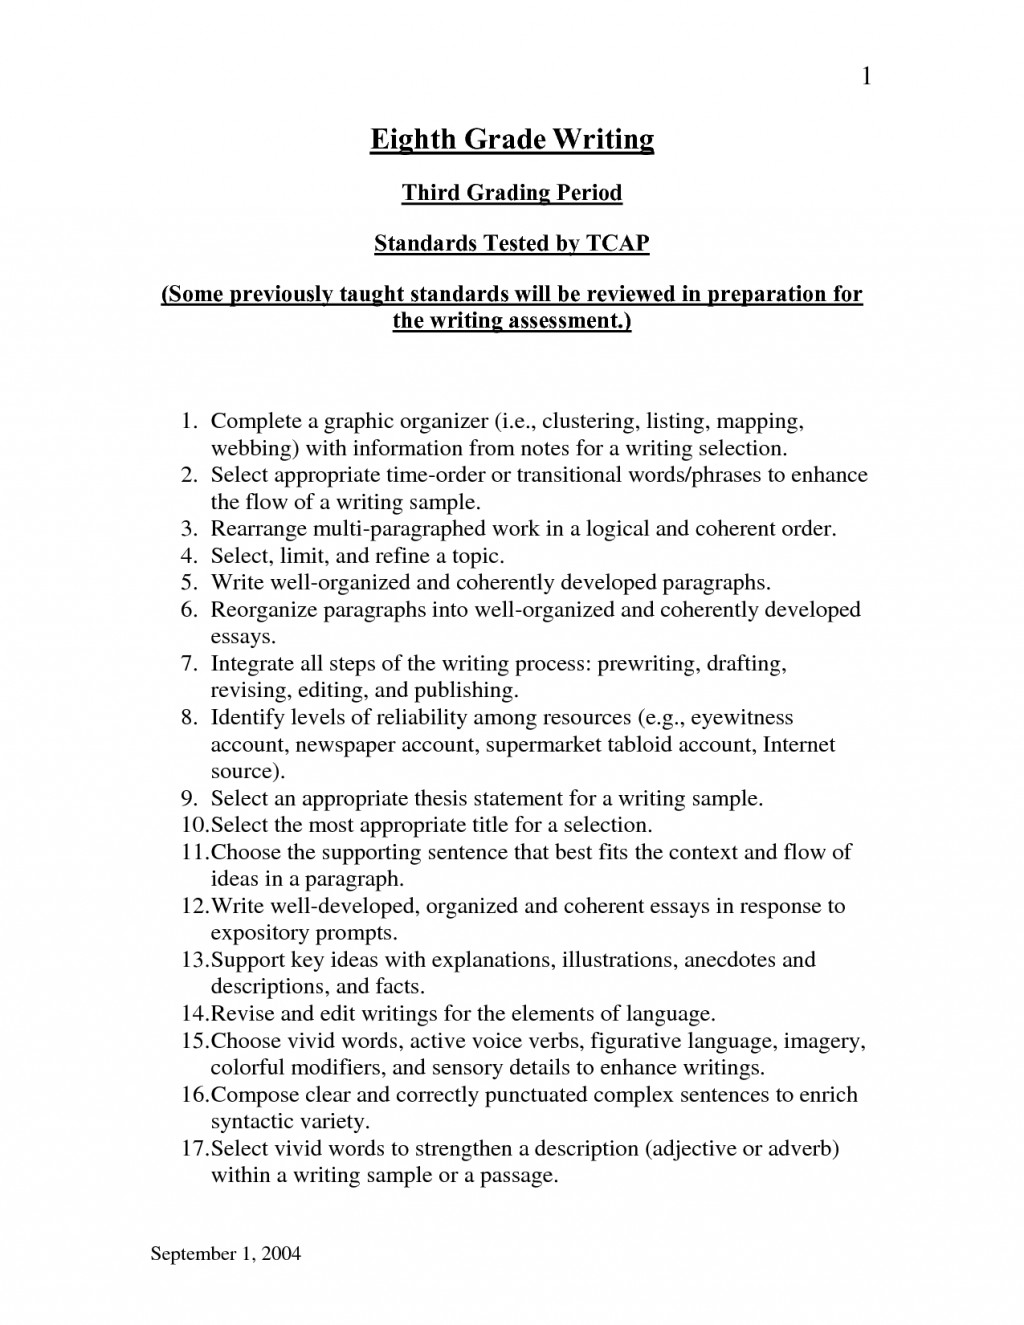 012 Essay Example What Is An Expository Writing Prompts For High School 1088622 Magnificent Gcu Examples 4th Grade Large